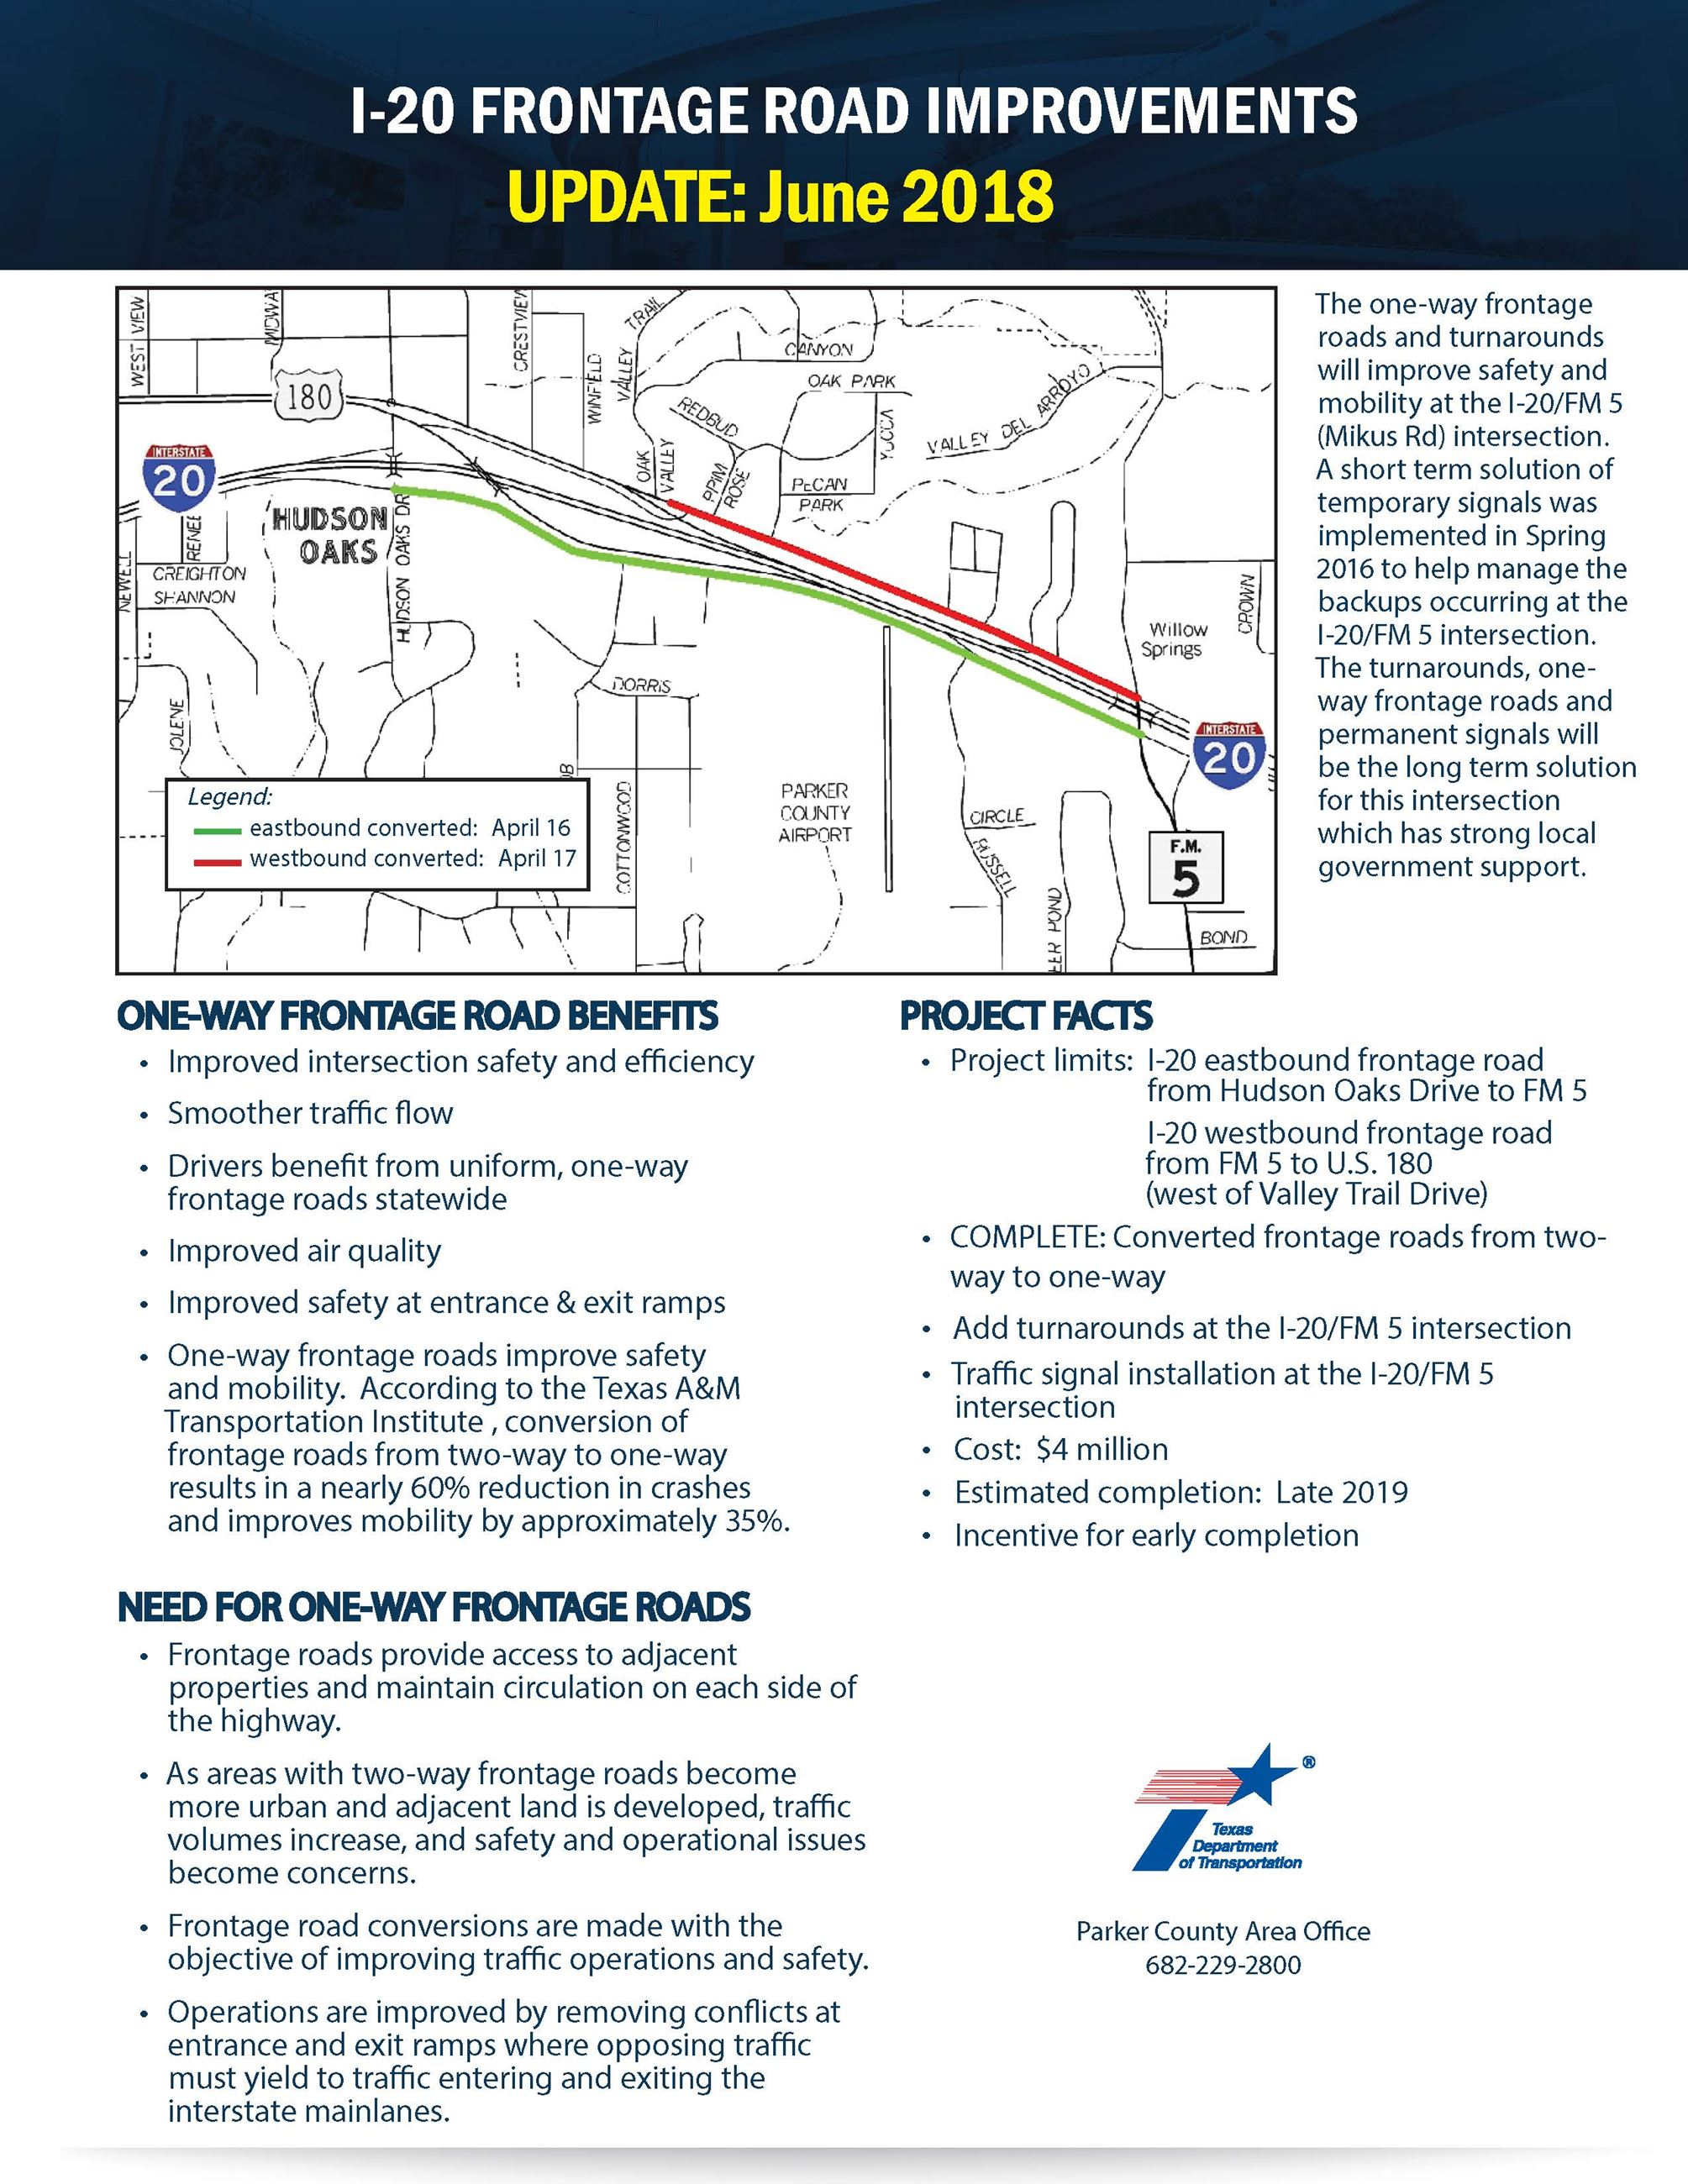 Image of Map Showing I-20 Frontage Road Improvements